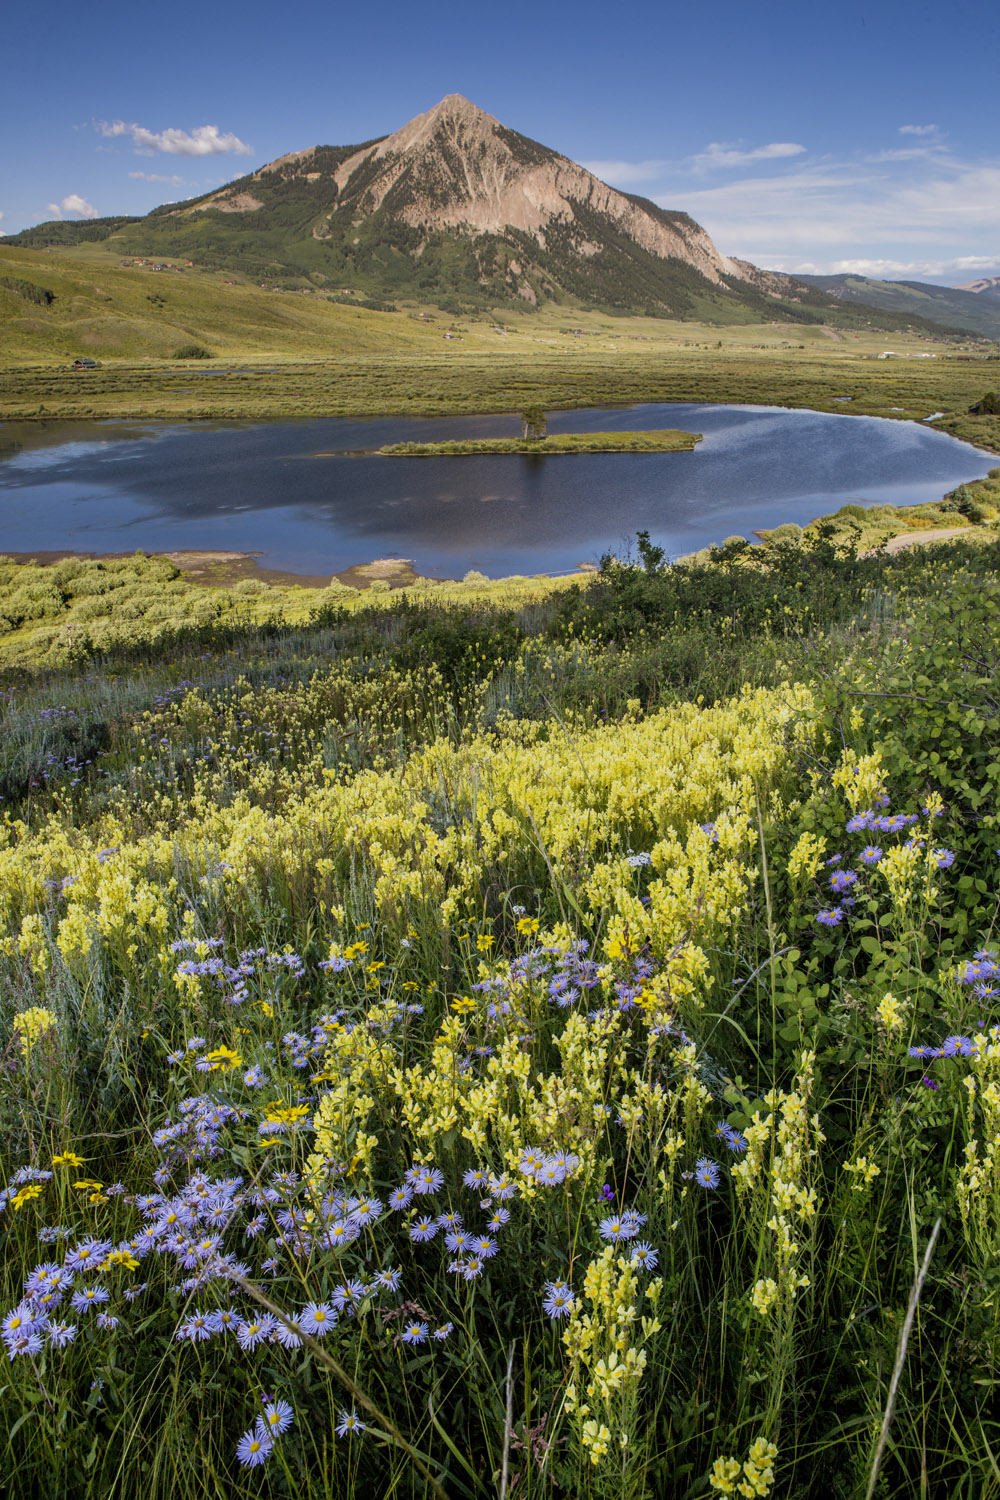 Day 2 - Crested Butte & Wildflowers (1).jpg